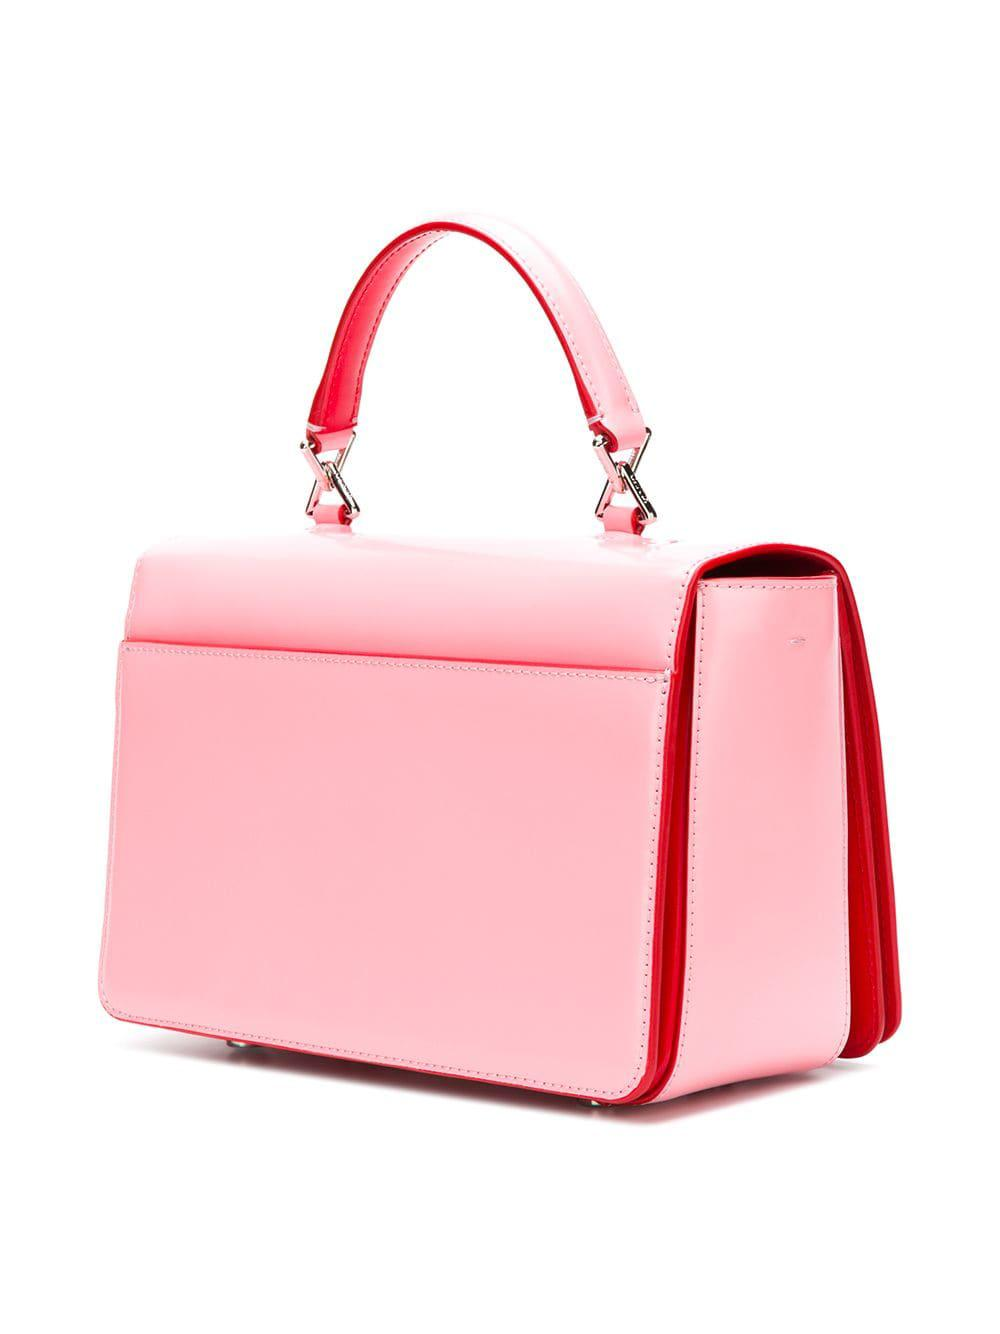 KENZO - Pink Bowling Bag With Shoulder Belt - Lyst. View fullscreen 15f30a78b4bb6